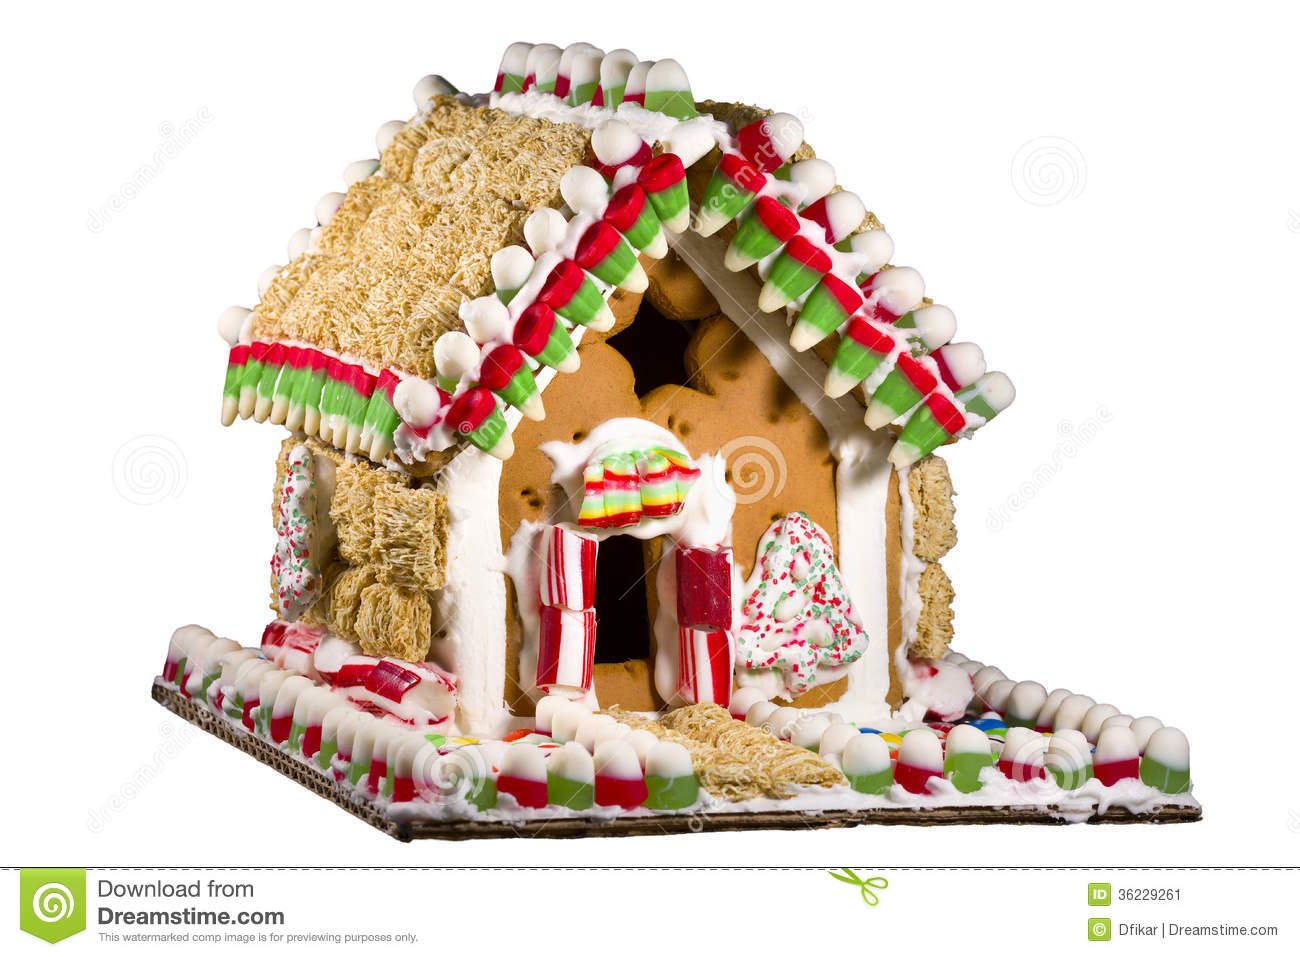 Gingerbread House White Chocolate